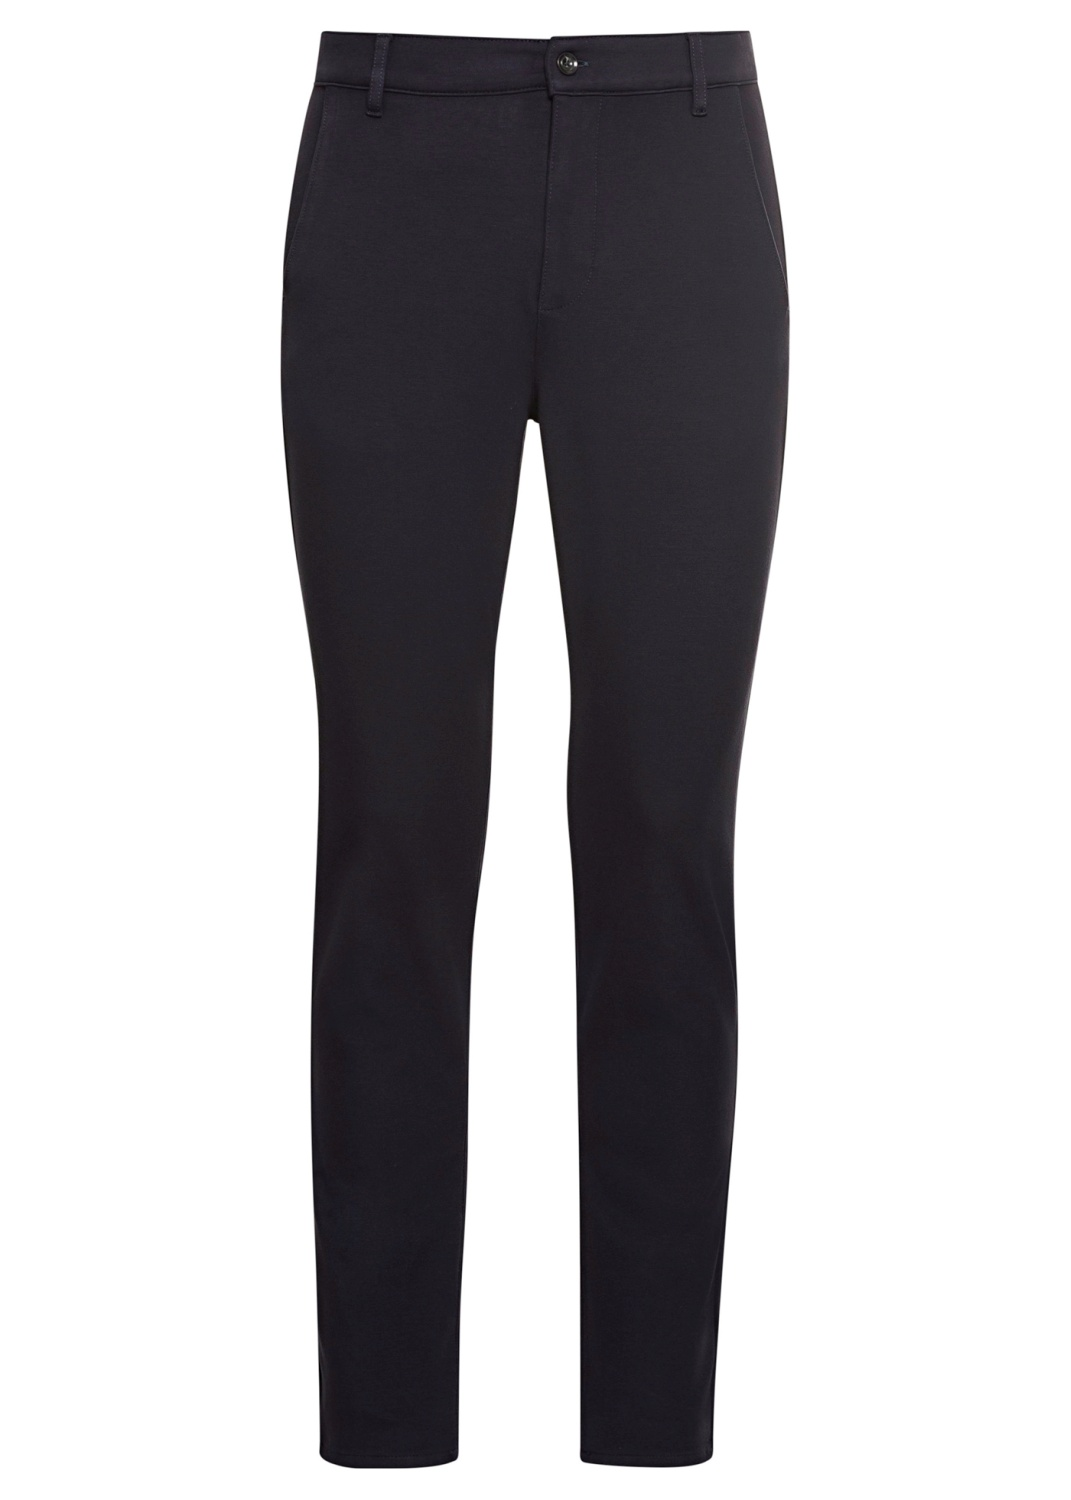 TRAVEL CHINO Double Knit  Navy image number 0